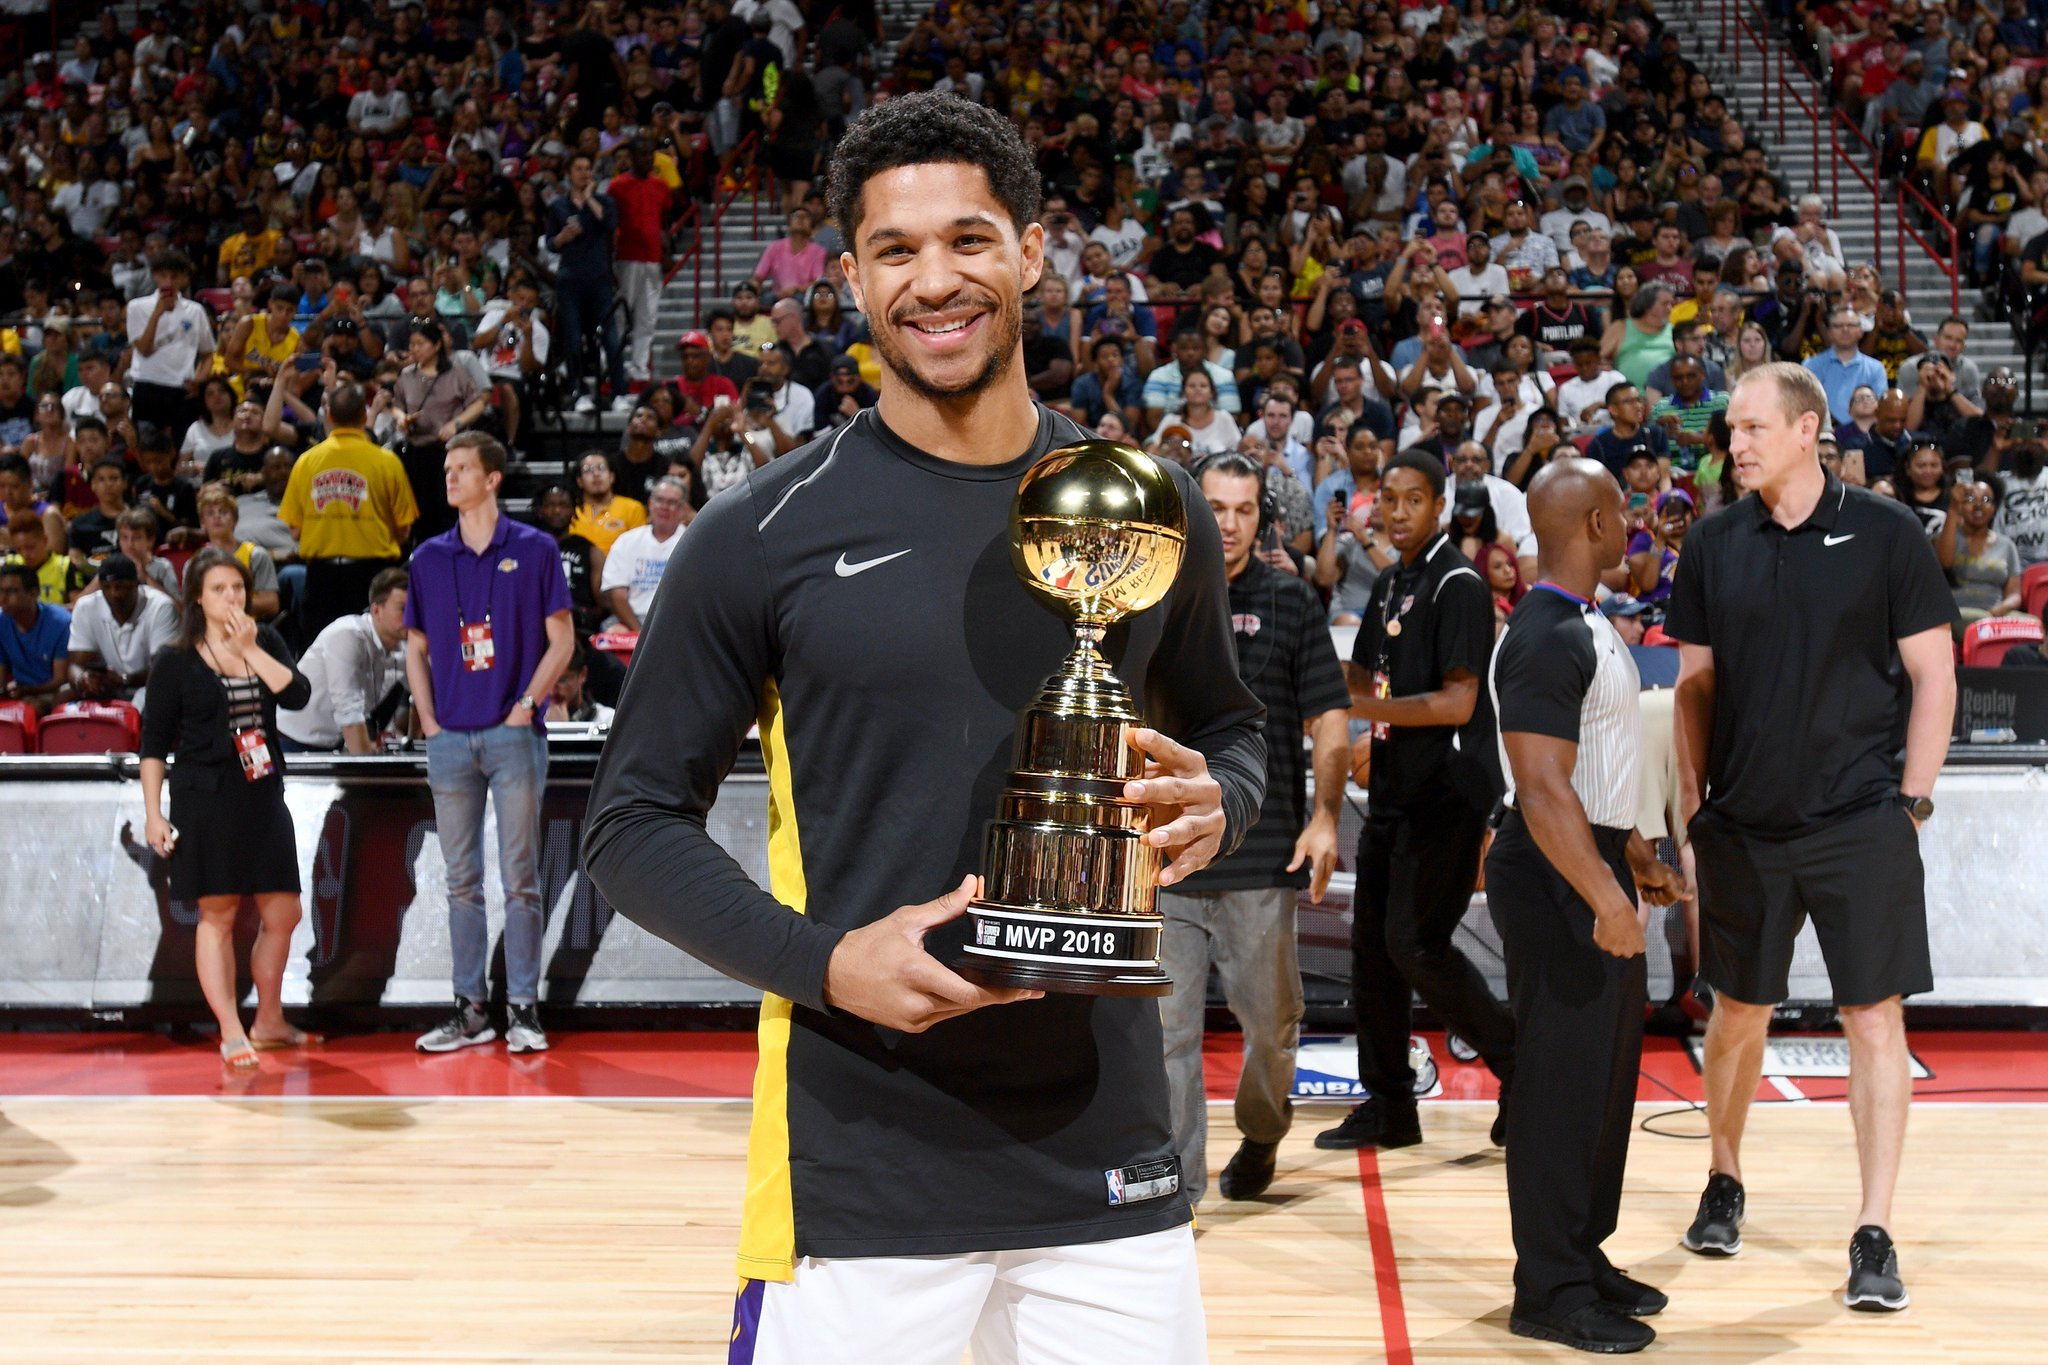 National champion with @NovaMBB ✔️ @NBASummerLeague MVP with the @Lakers ✔️  @joshhart ➡️ #ThisIsWhyWePlay https://t.co/tPWXUC49rD